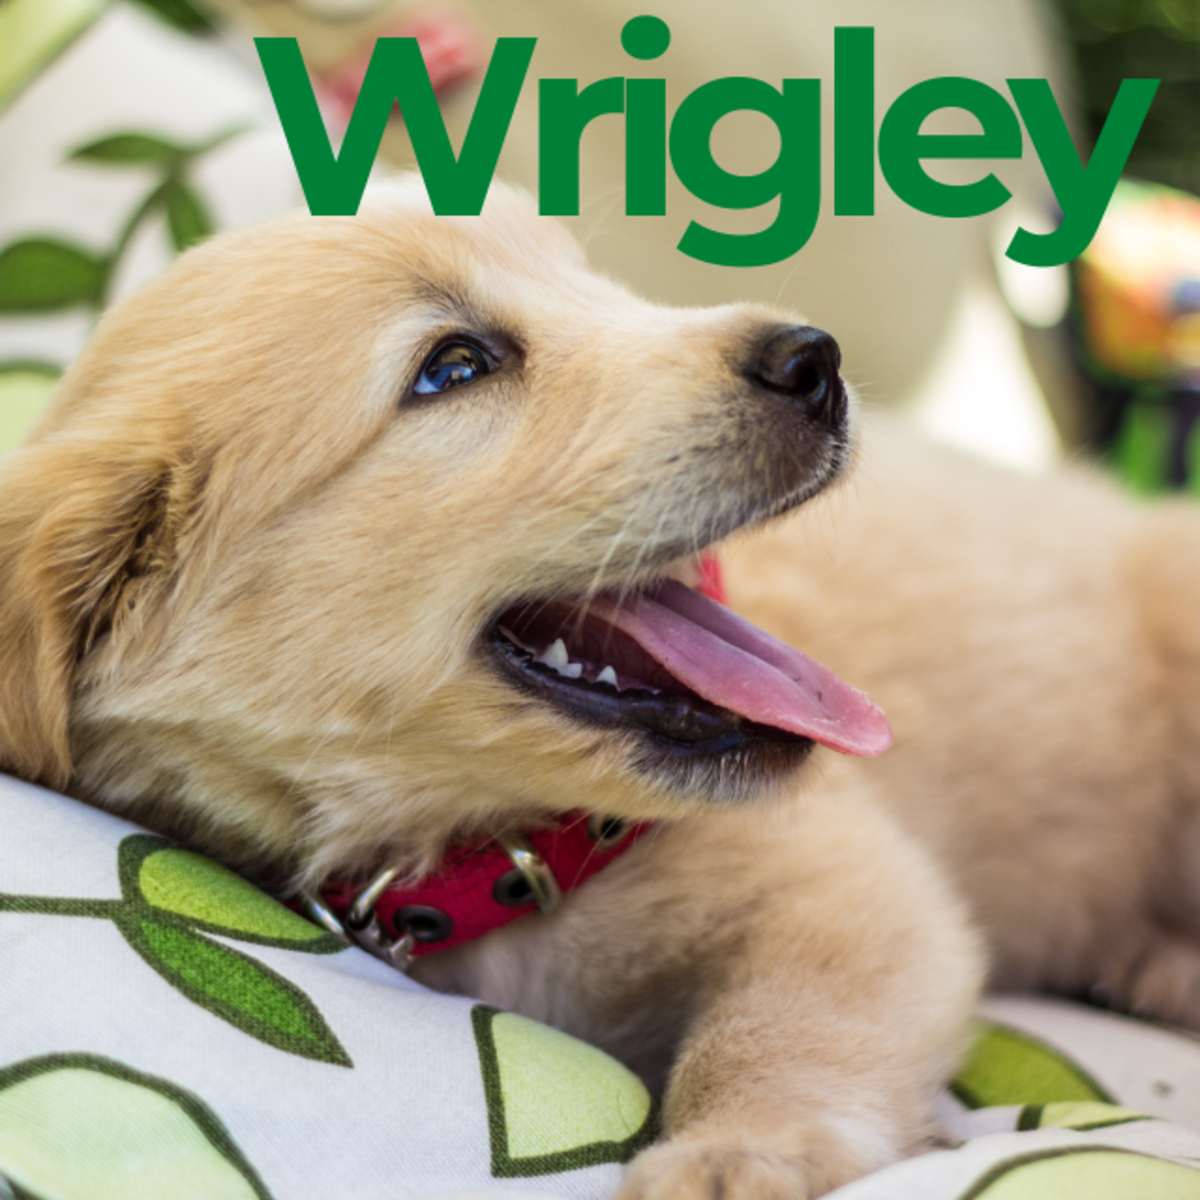 Puppy named Wrigley